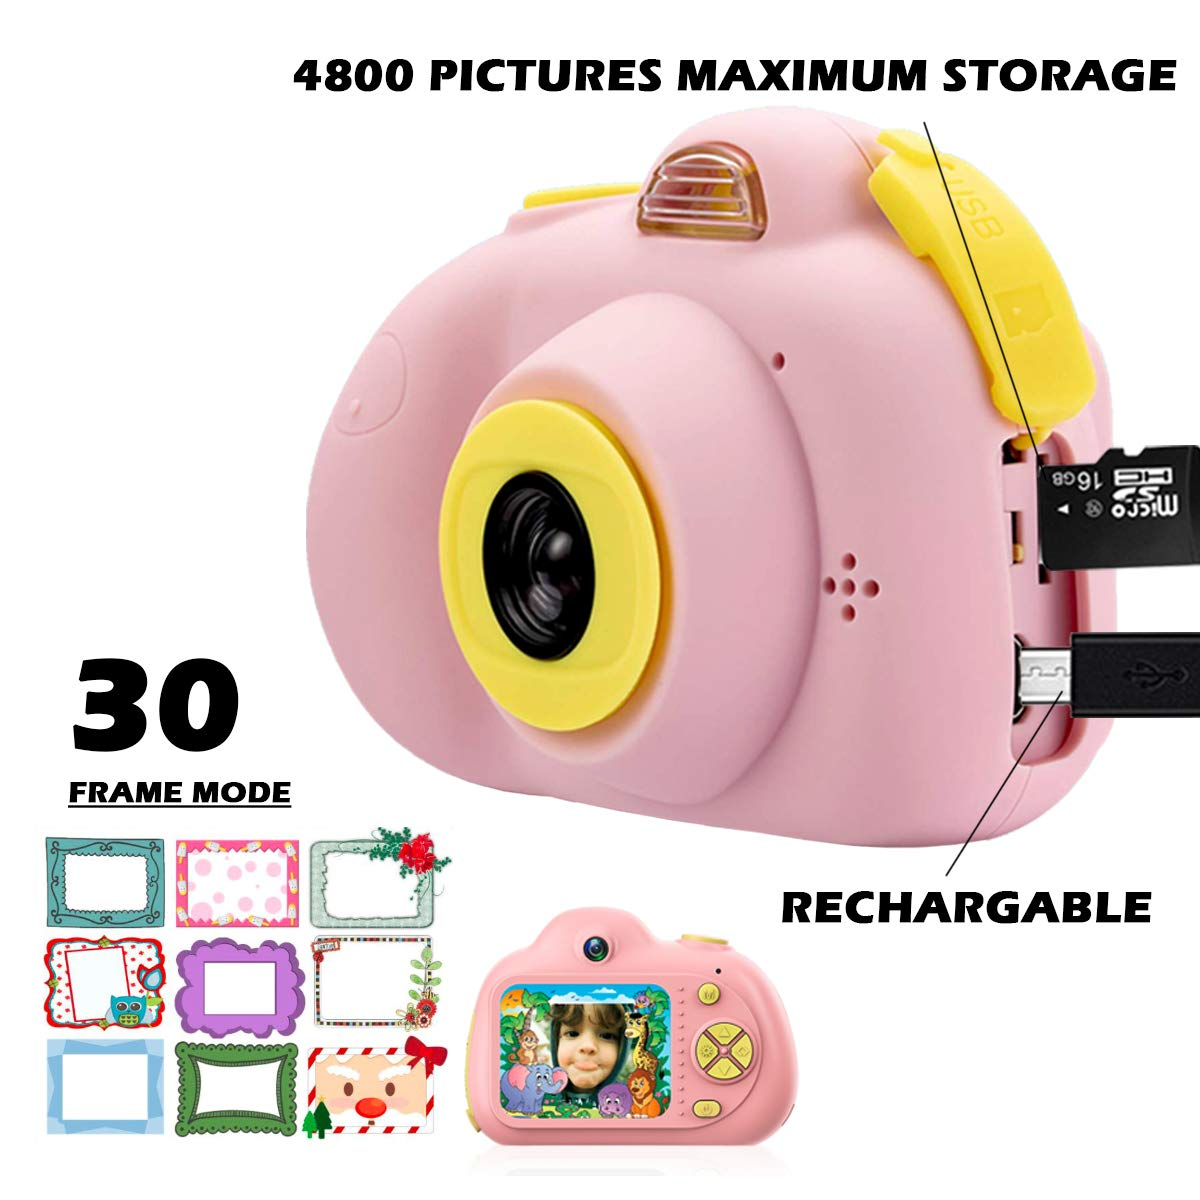 KIDOVE Kids Toys Fun Camera, Waterproof & Shockproof Child Selfie digital game Camcorder, 8MP 1080P dual camera Video Recorder, Creative Birthday Gifts for girls and boys, 16GB TF Card Included (Pink) by KIDOVE (Image #2)